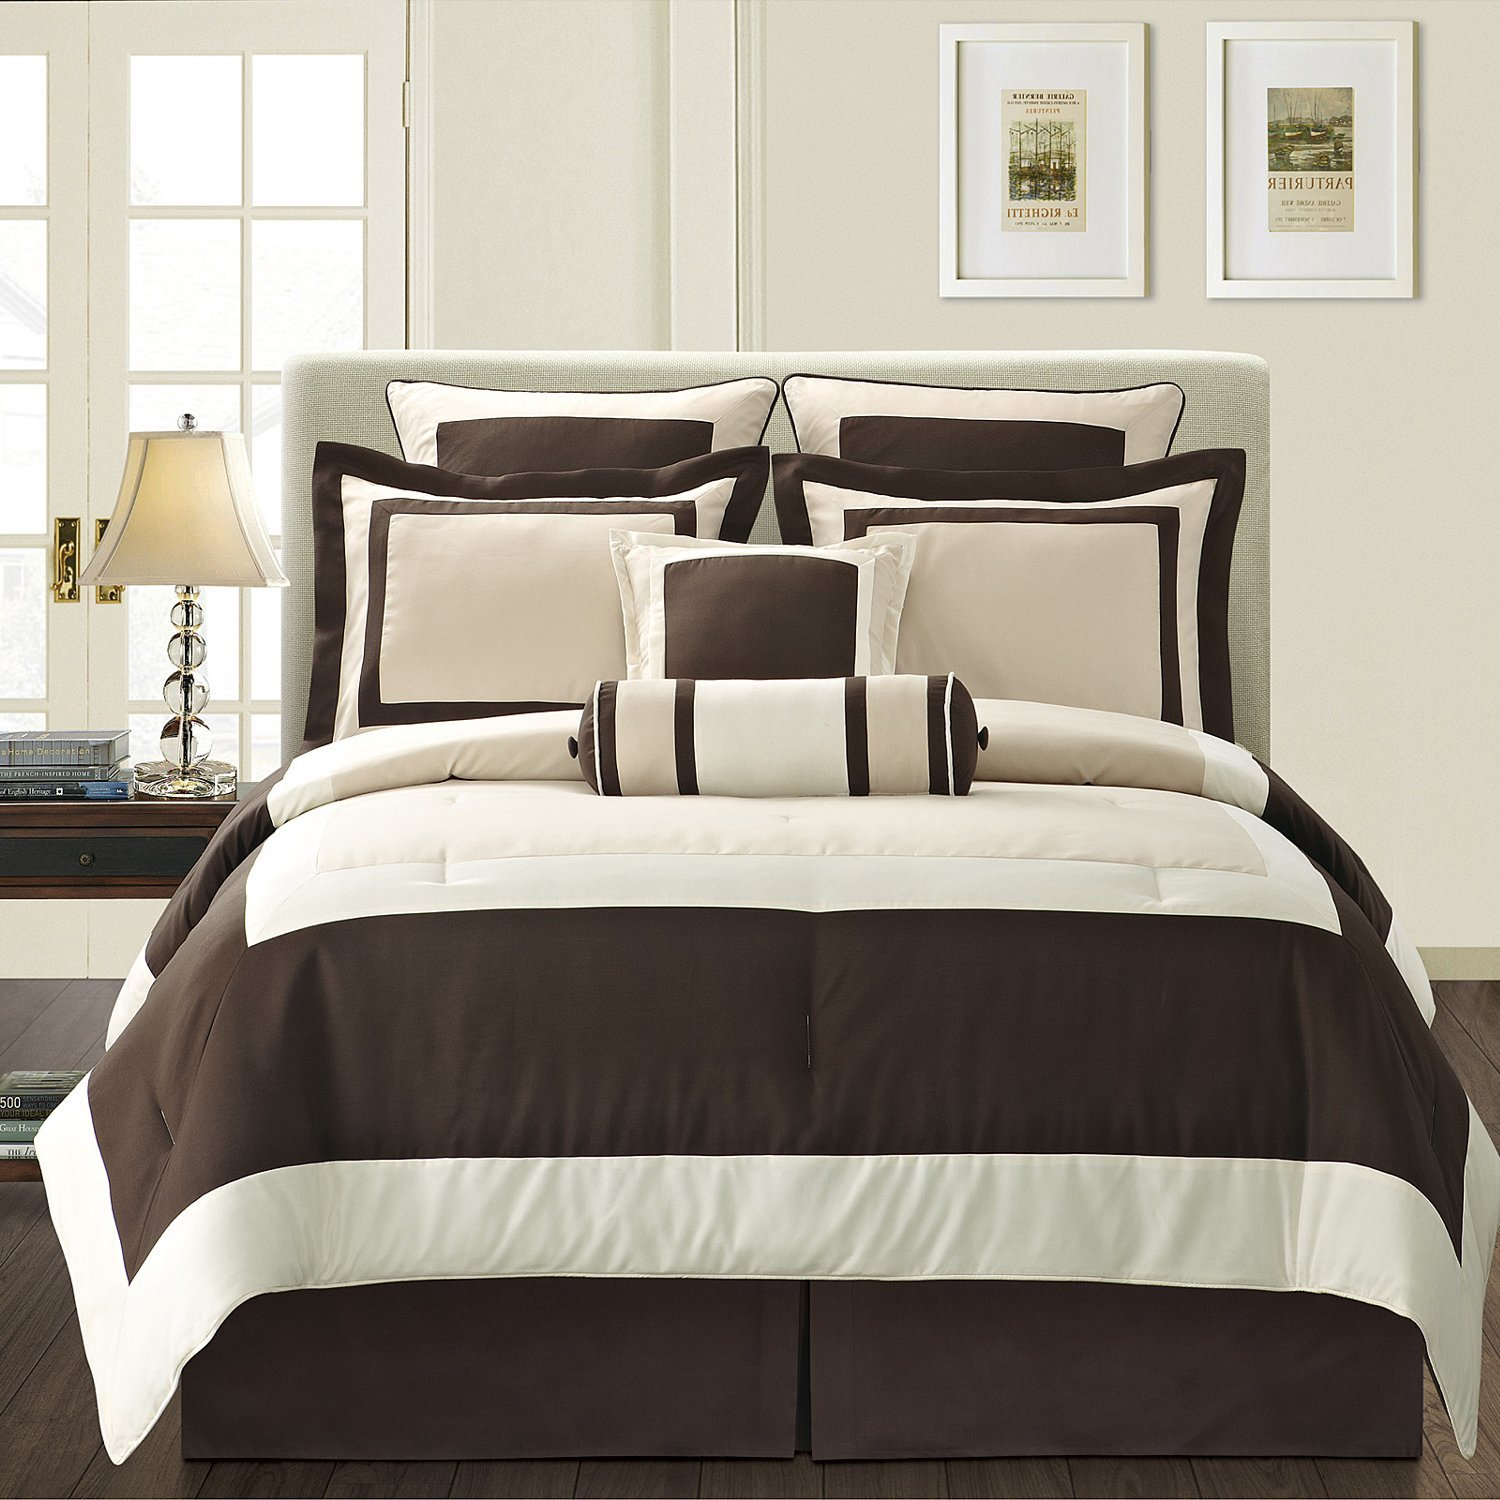 Image of: Brown Comforter Sets King